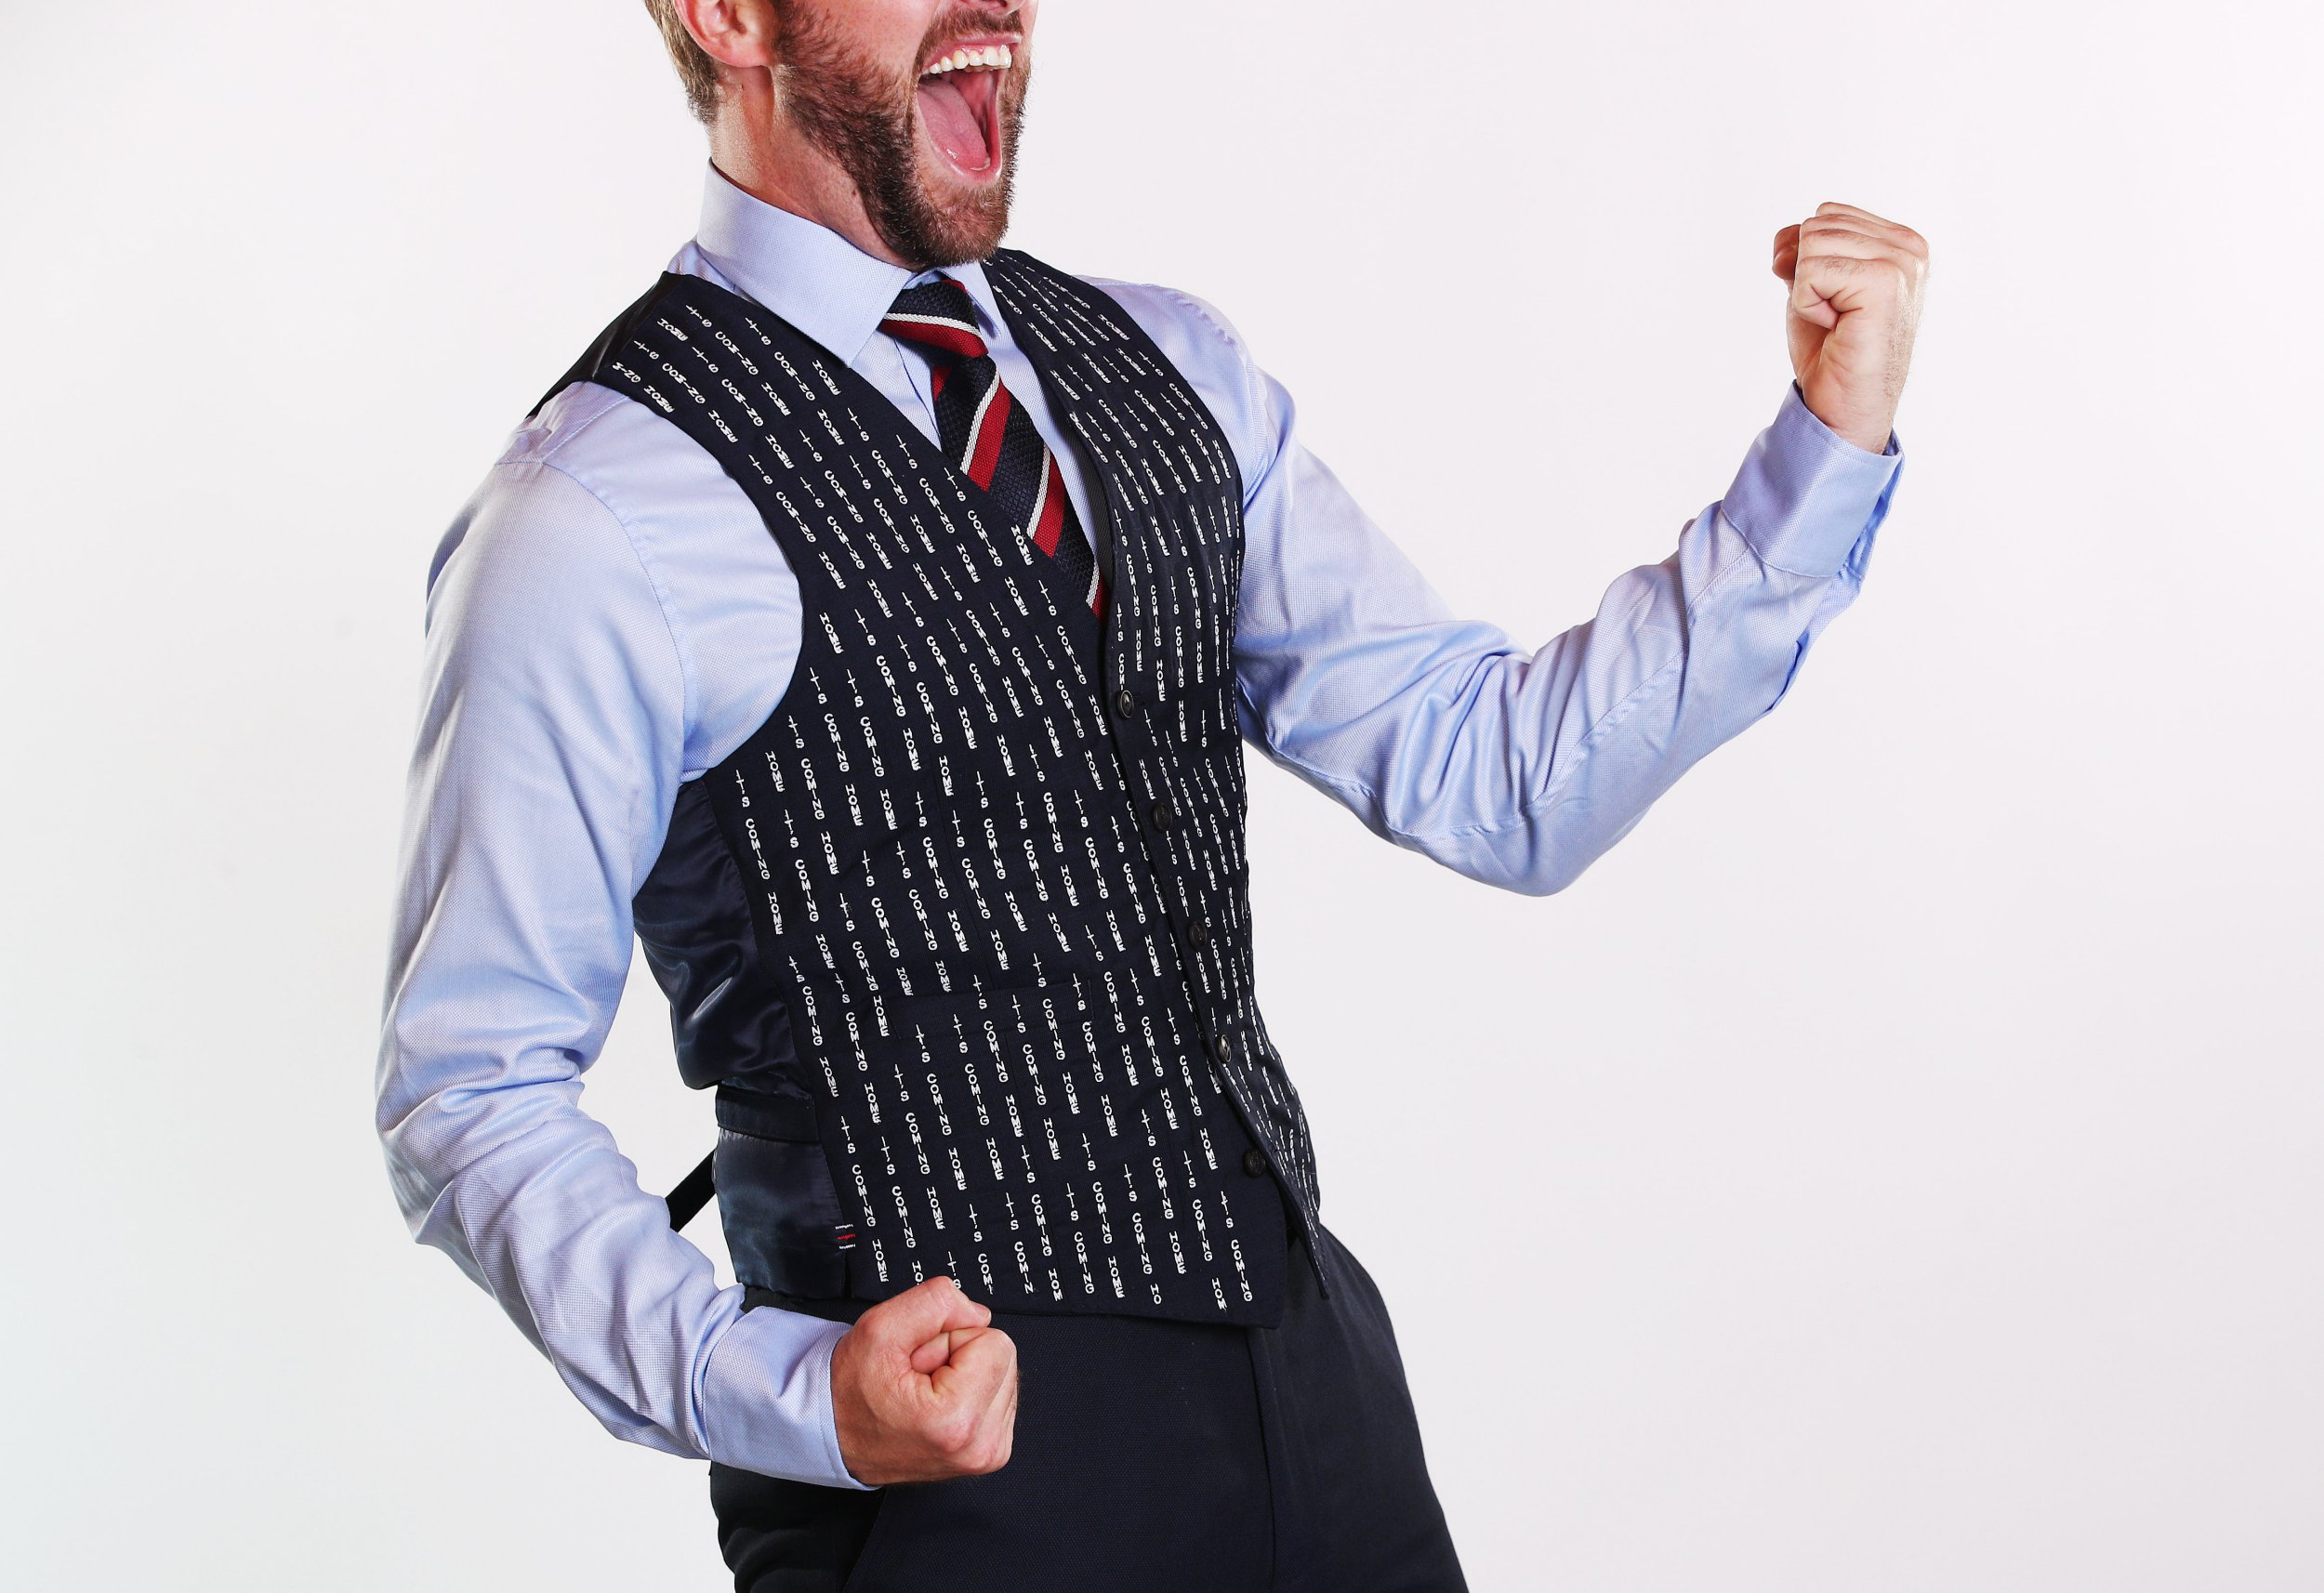 A waistcoat with ???It???s Coming Home??? embroidered in has been made a reality by mobile phone brand Huawei following their photoshopped version released last week to promote the 5x zoom feature on their latest device, the P20 Pro. It was embroidered over the weekend in response to huge public demand and is available for one England fan to win today on their Twitter channel (@HuaweiMobileUK). A second waistcoat was also created and may be on its way to Russia marked FAO Gareth Southgate . . . Where: United Kingdom When: 09 Jul 2018 Credit: Joe Pepler/PinPep/WENN.com